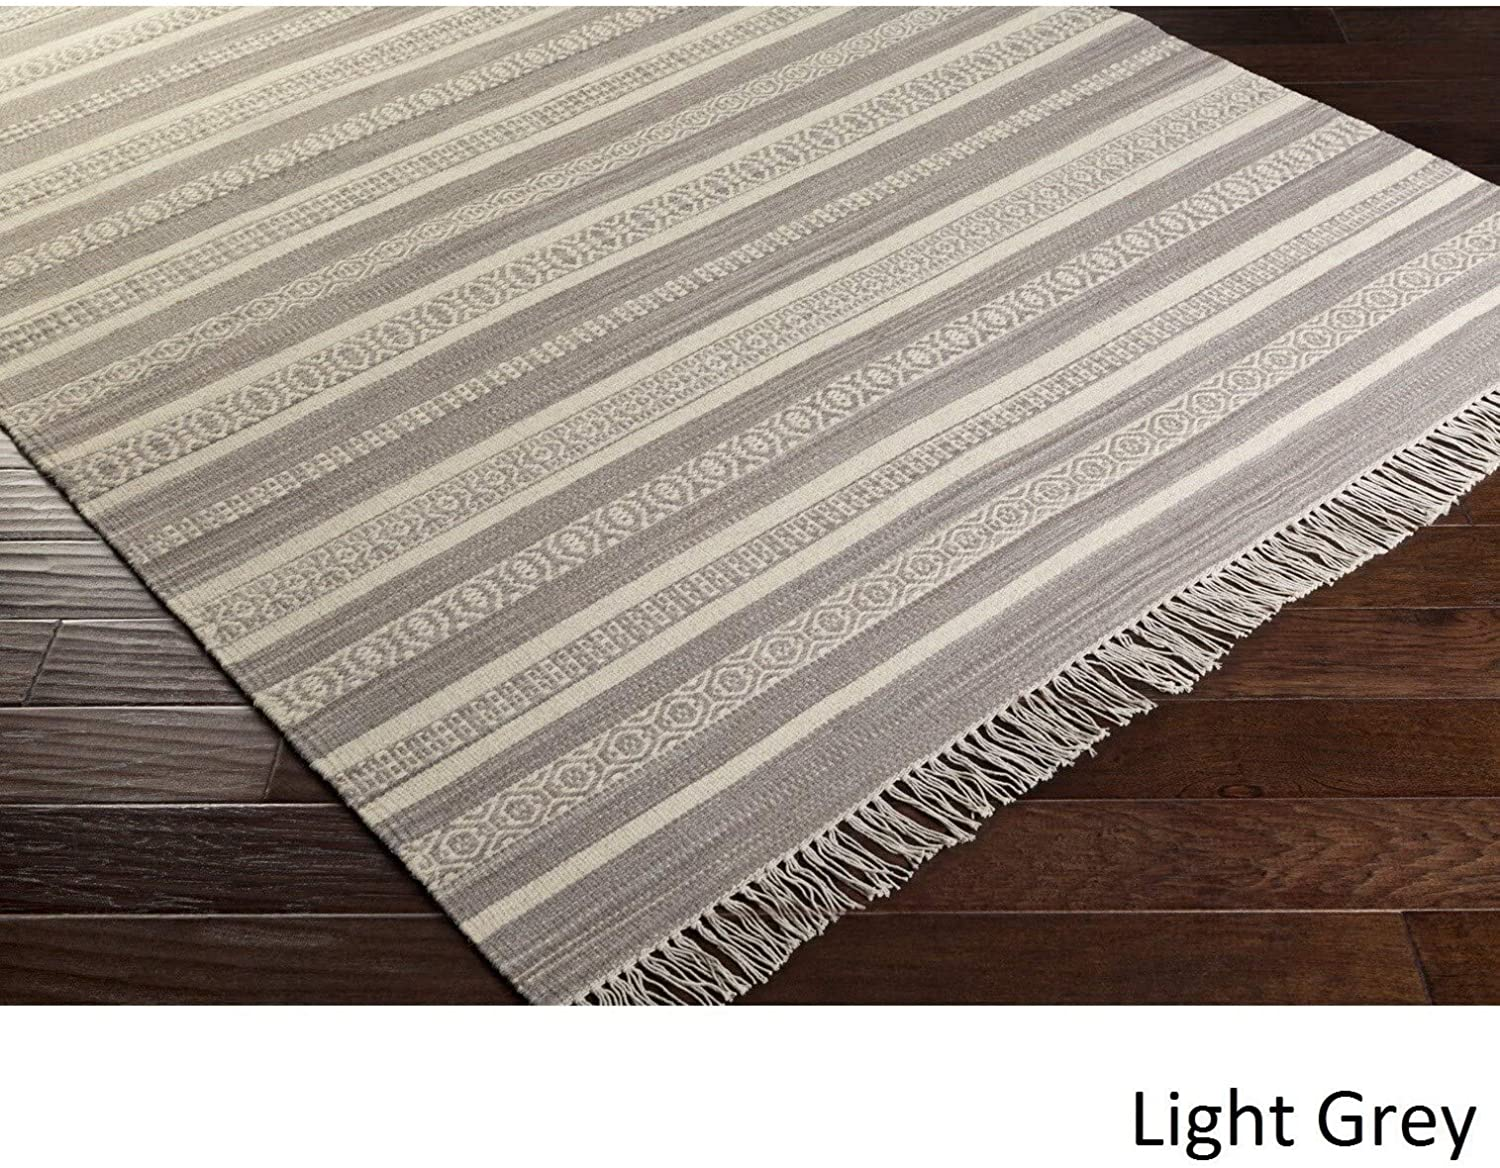 MISC Hand Woven Clarita Wool/Cotton Area Rug (4' X 6') 4' 6' Blue Brown Grey Ivory Purple Geometric Nature Stripe Casual Southwestern Rectangle Cotton